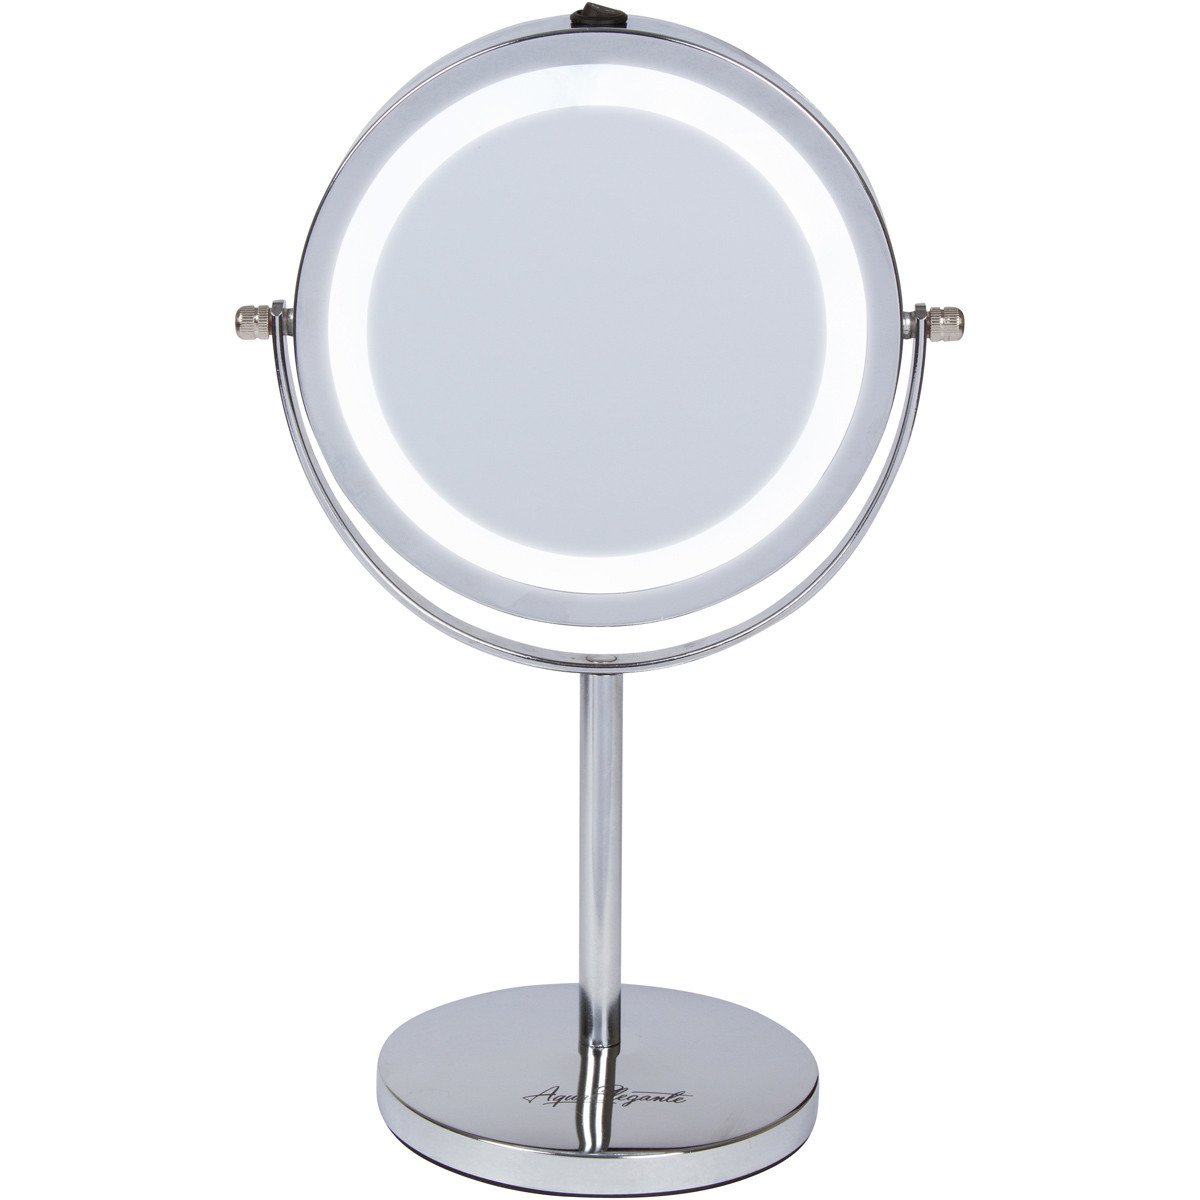 Conair Lighted Makeup Mirror | Lighted Makeup Mirror | Electric Lighted Makeup Mirror